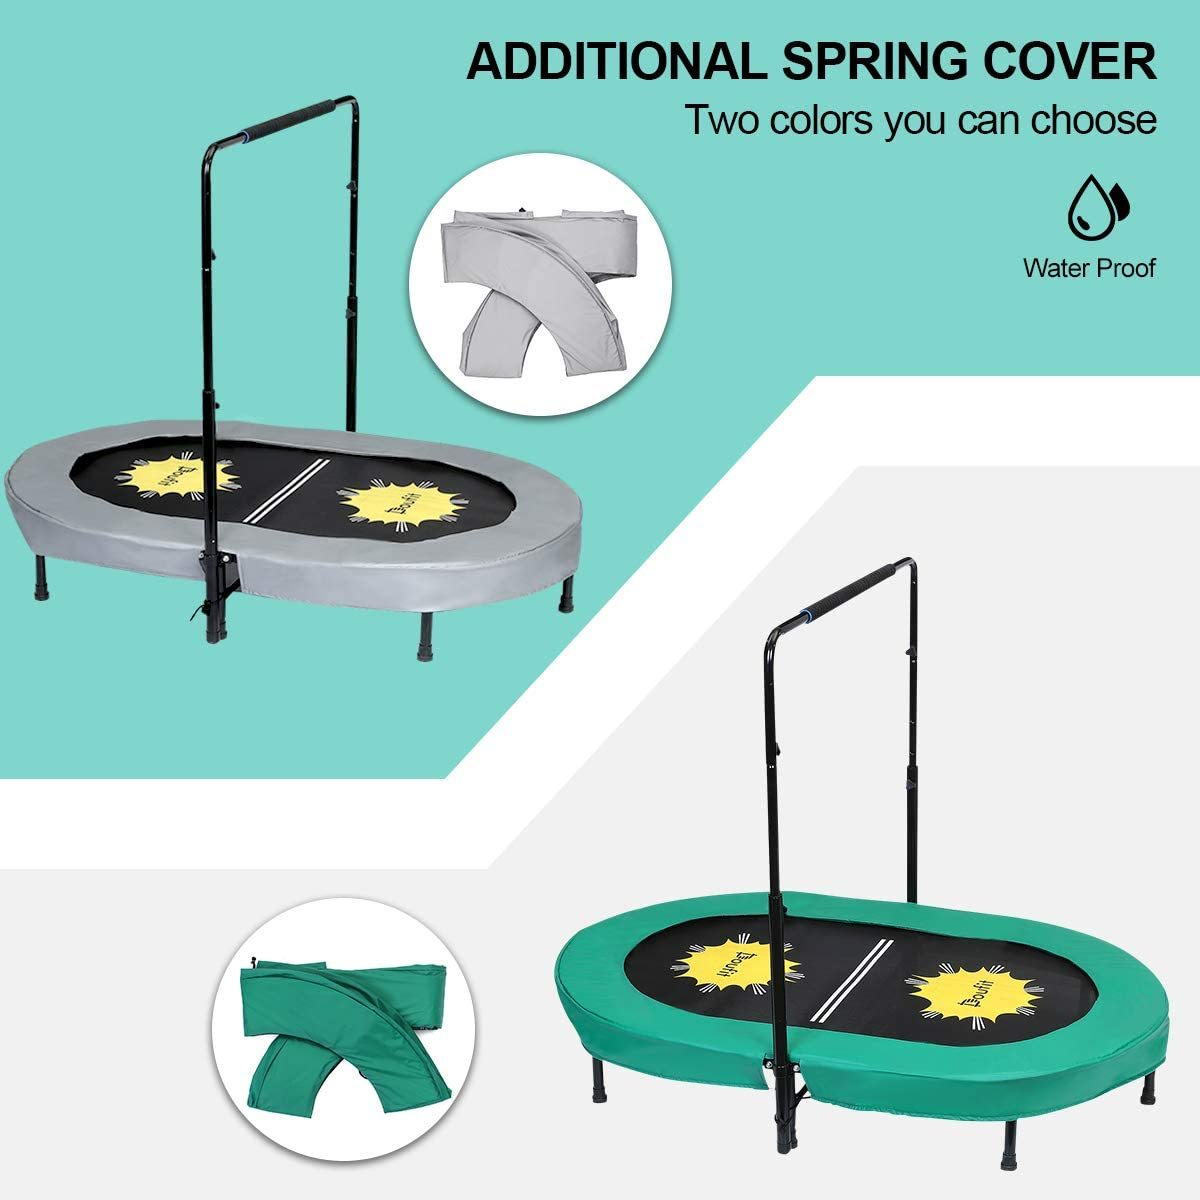 Trampoline for Kids and Adults with Adjustable Handle, TR-01 Double Jumping Fitness Rebounder Foldable Trampoline for Indoor and Outdoor Exercise with Additional Spring Pad